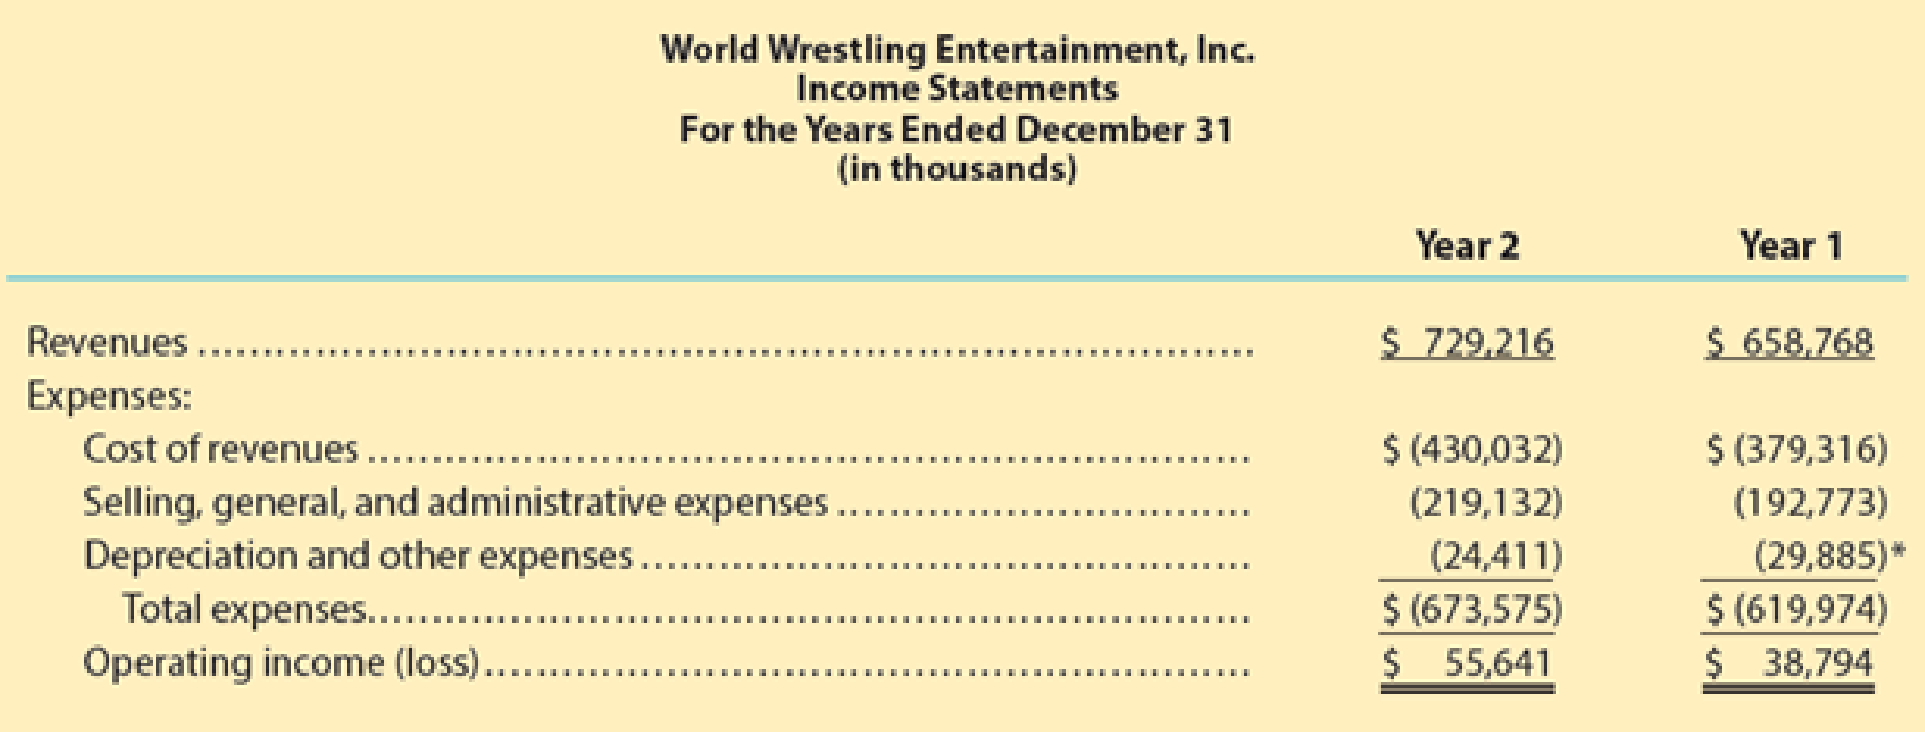 Chapter 3, Problem 3MAD, Analyze World Wrestling Entertainment World Wrestling Entertainment, Inc. (WWE) is a sports media